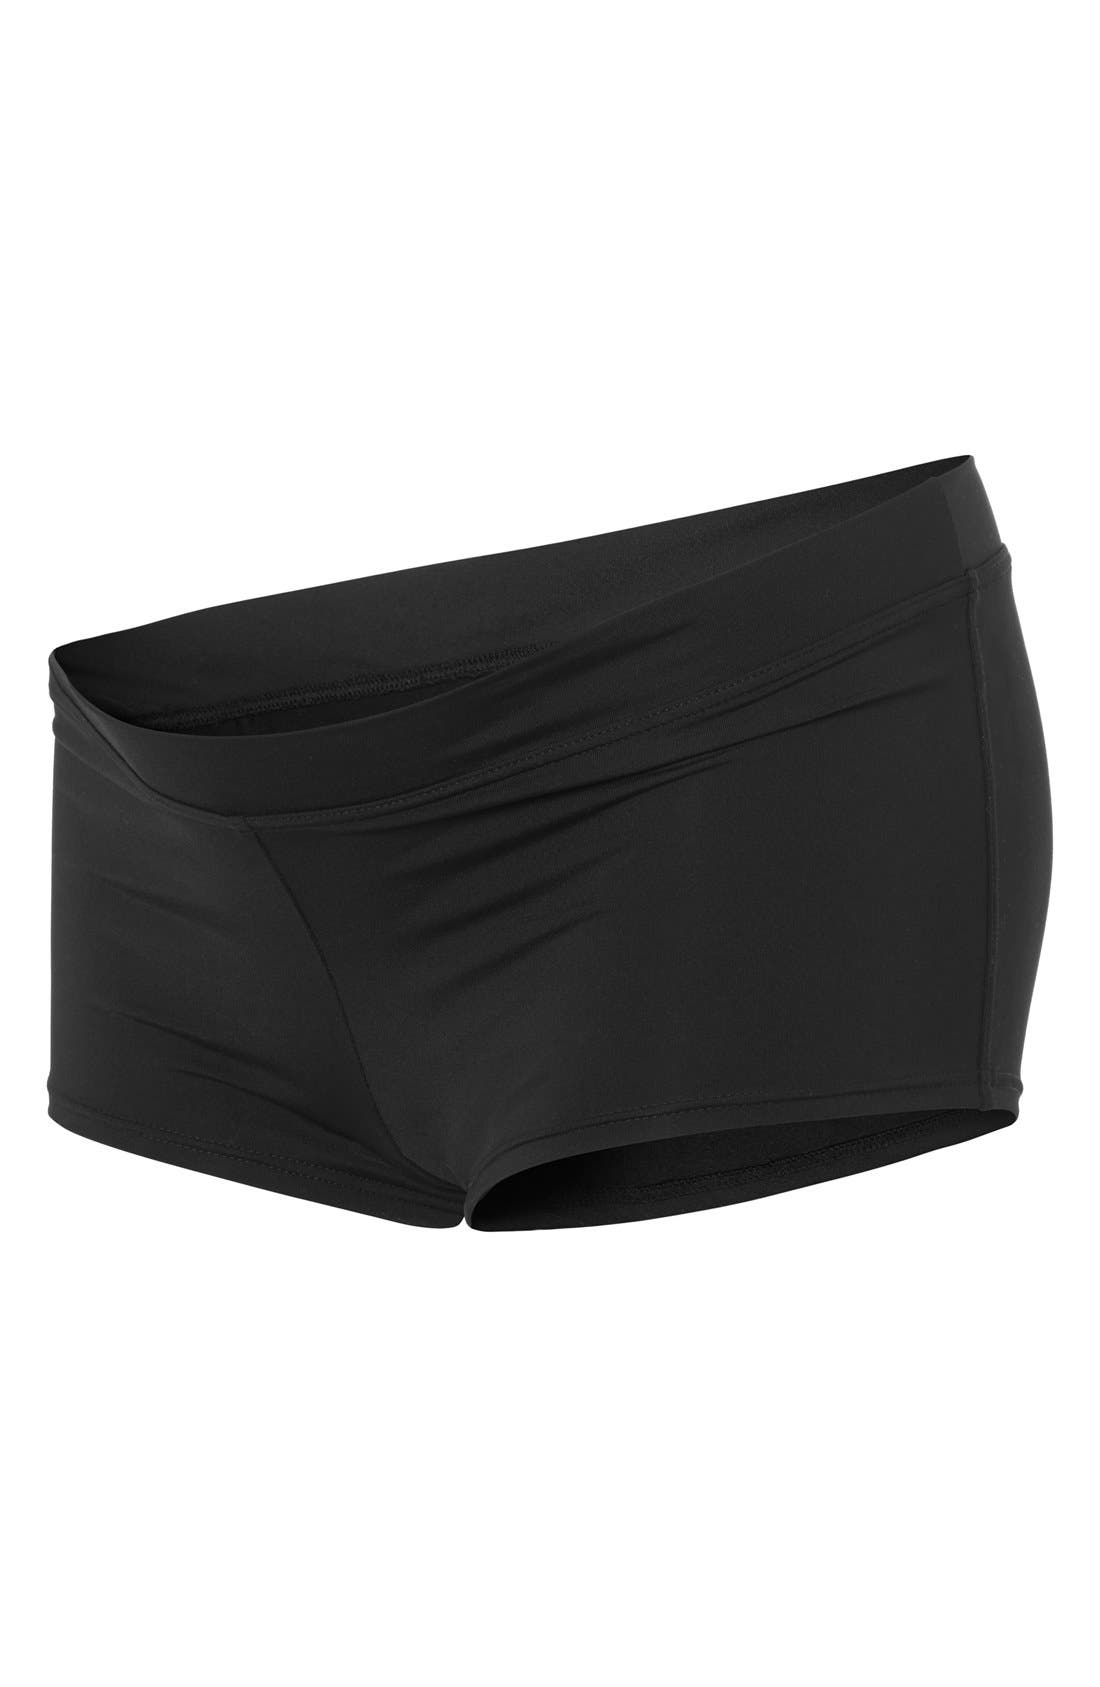 NOPPIES,                             'Saint Tropez' Maternity Boyshort Swim Bottoms,                             Alternate thumbnail 3, color,                             BLACK